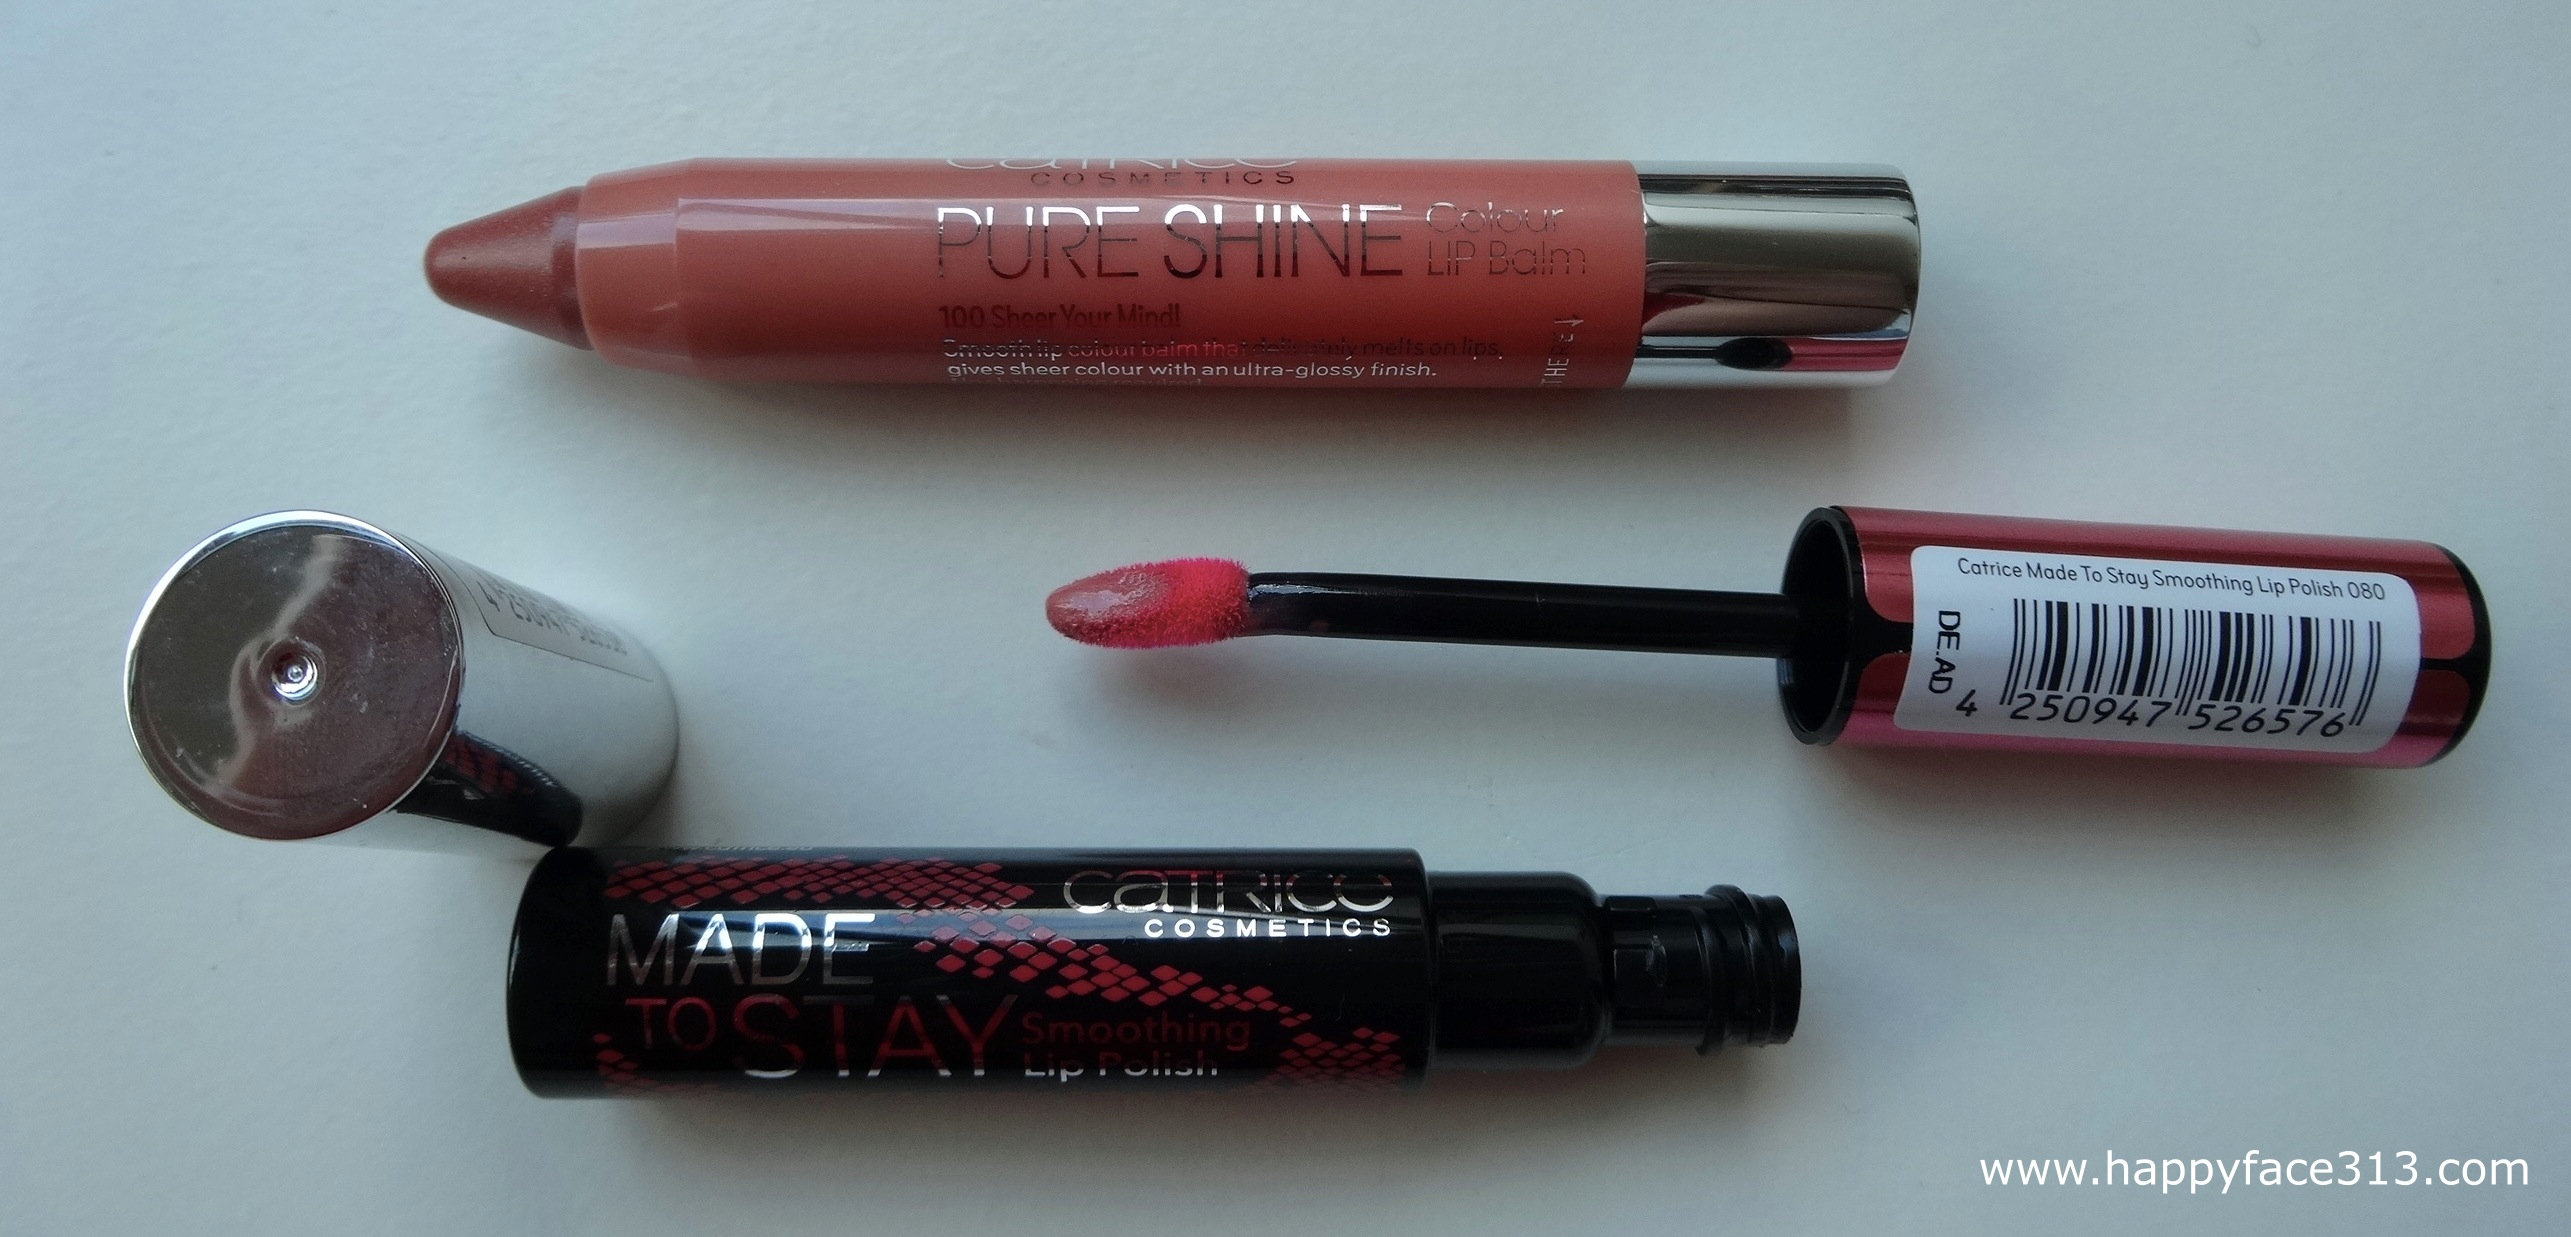 Catrice Pure Shine Colour Lip Balm & Made To Stay Smoothing Lip Polish